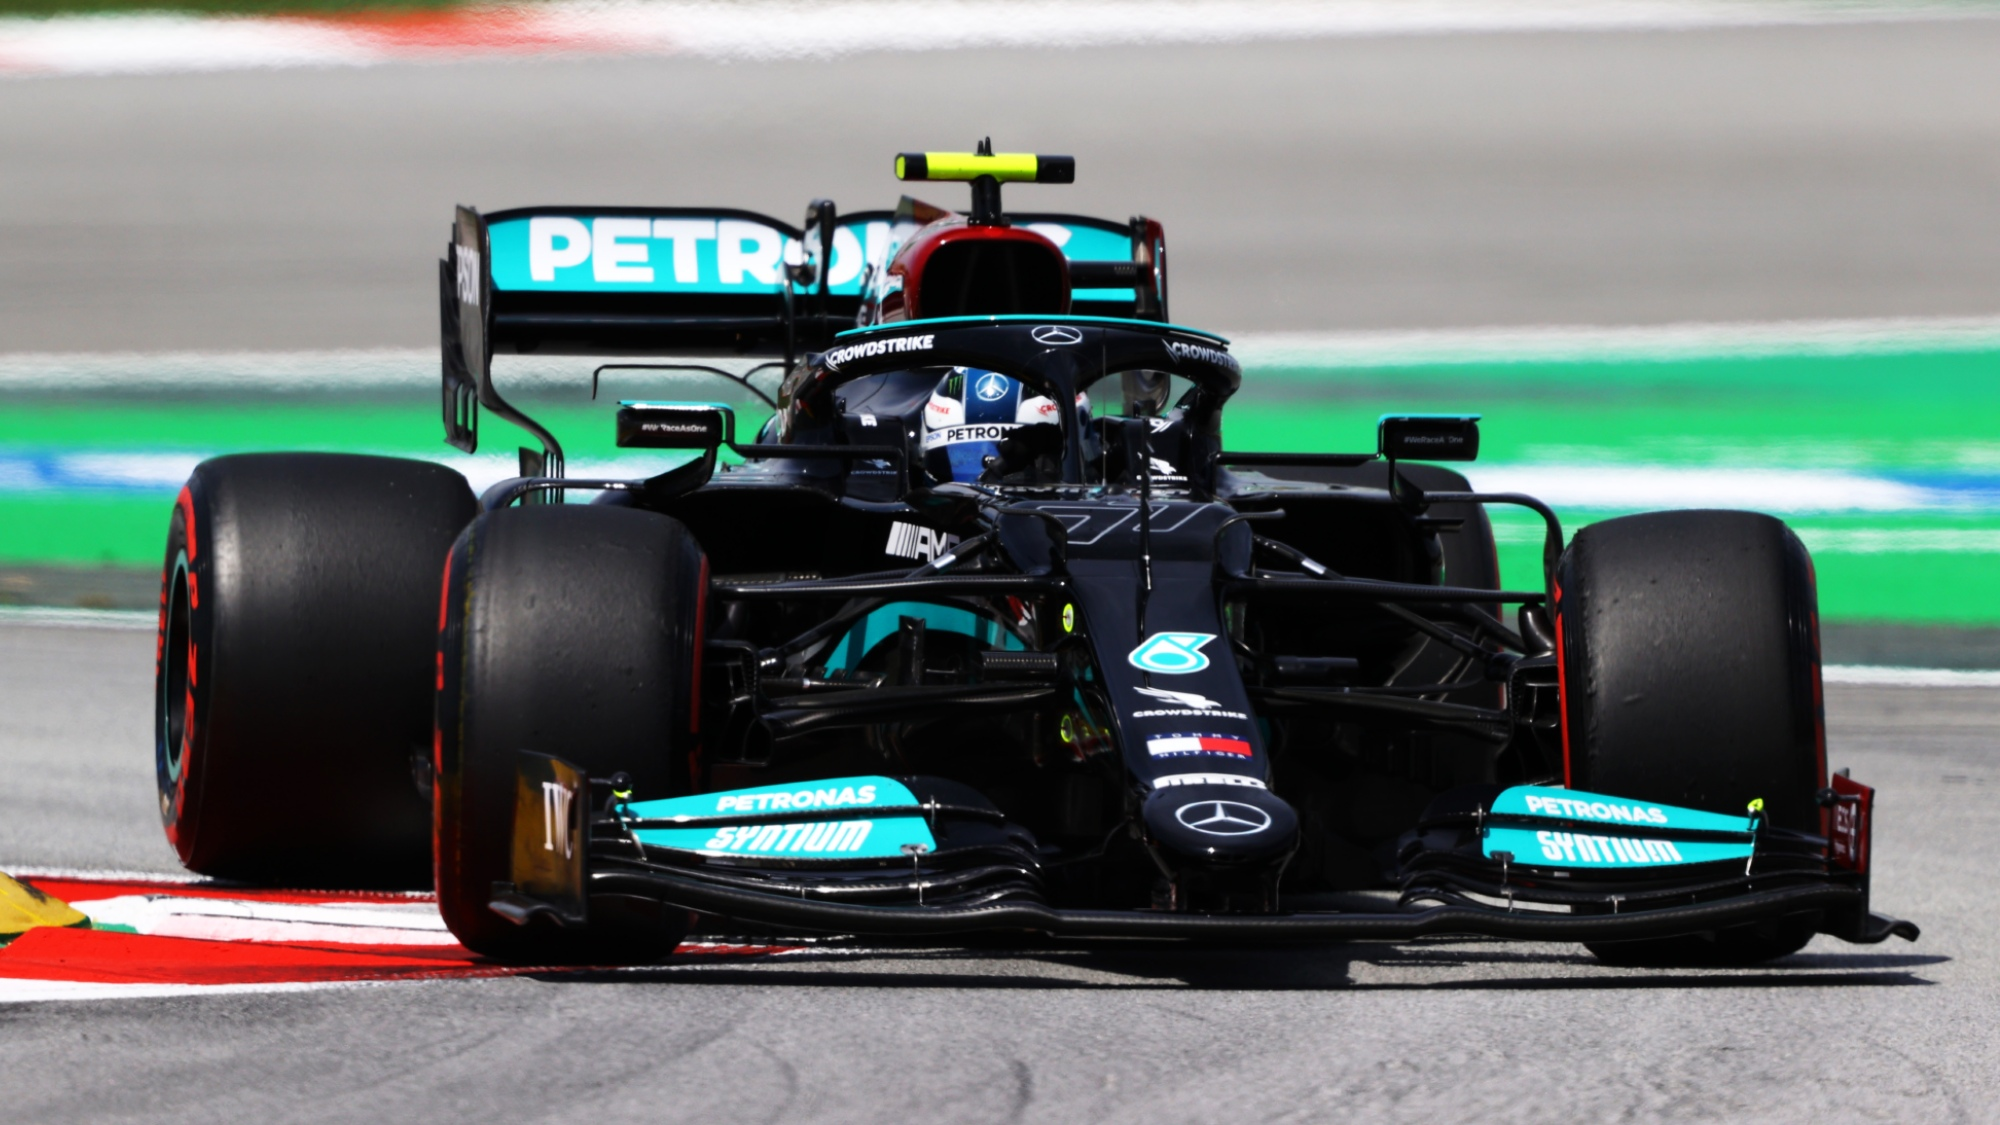 2021 Spanish Grand Prix practice round-up: Bottas fastest in Barcelona after first practice